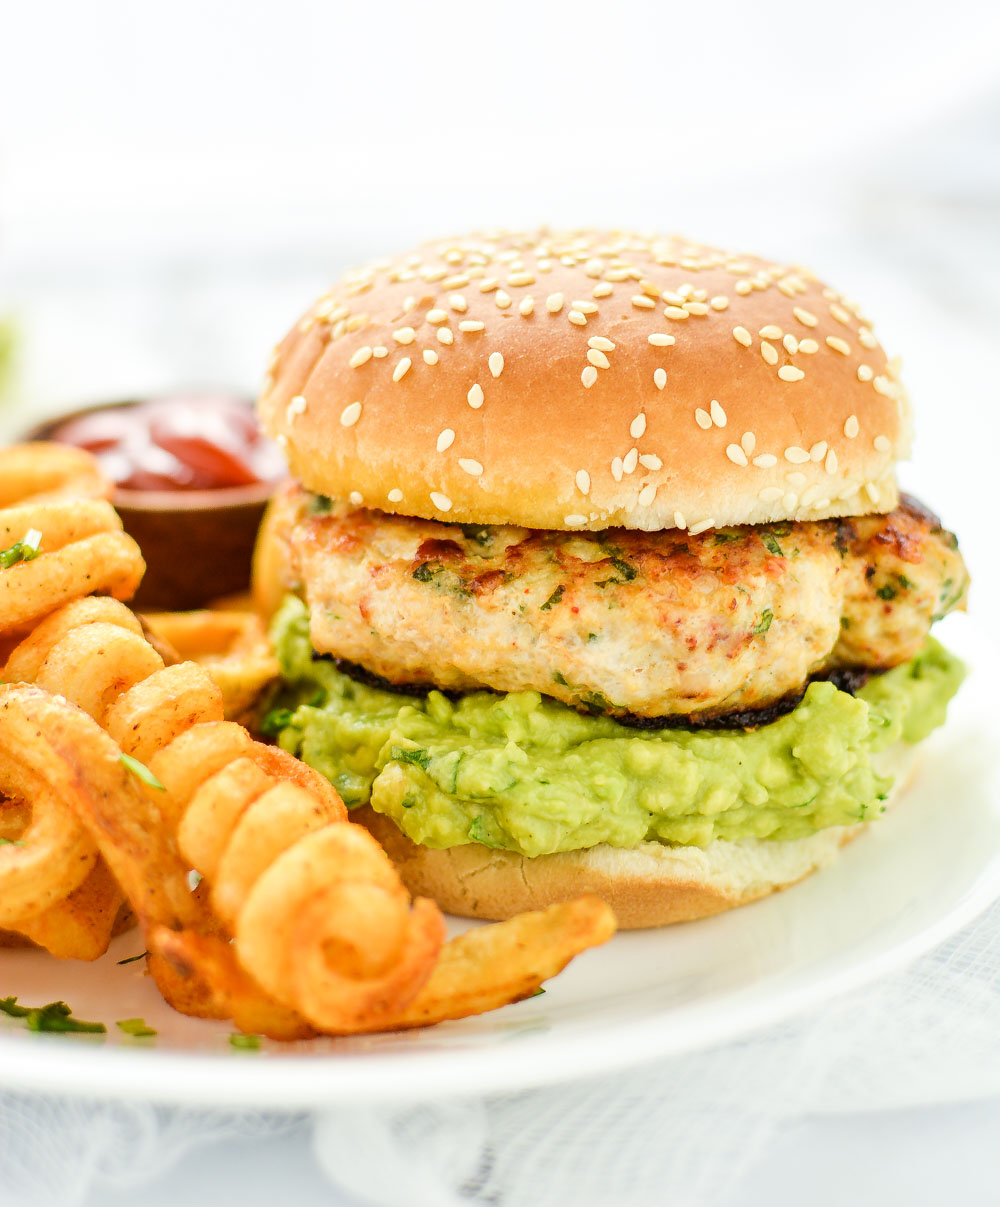 images of chicken burgers - photo #18